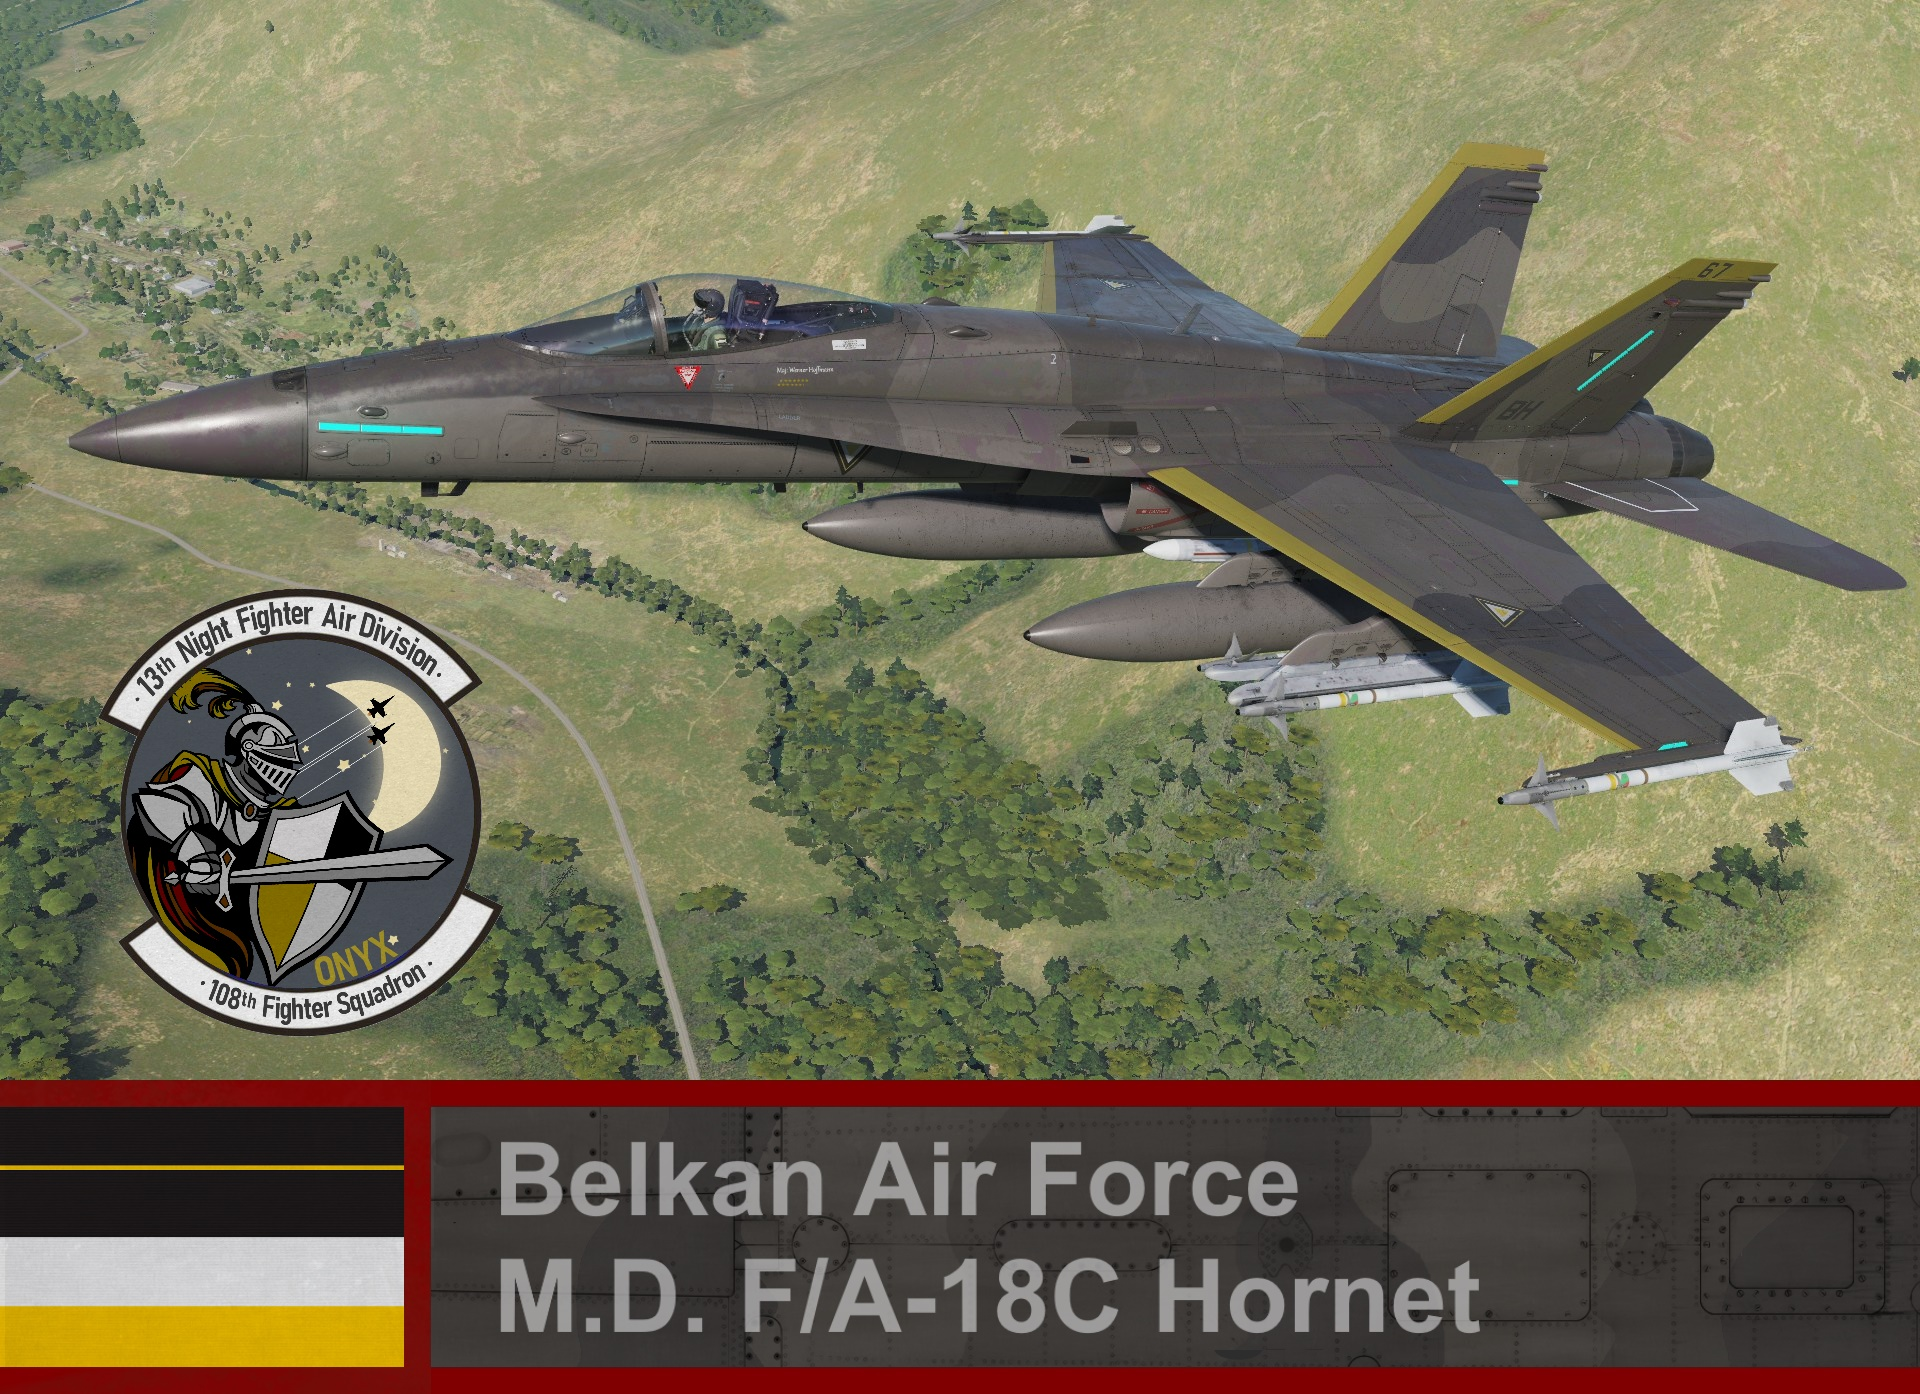 Belkan Air Force F/A-18C Hornet - Ace Combat Zero (108th FS) Maj. Werner Hoffmann